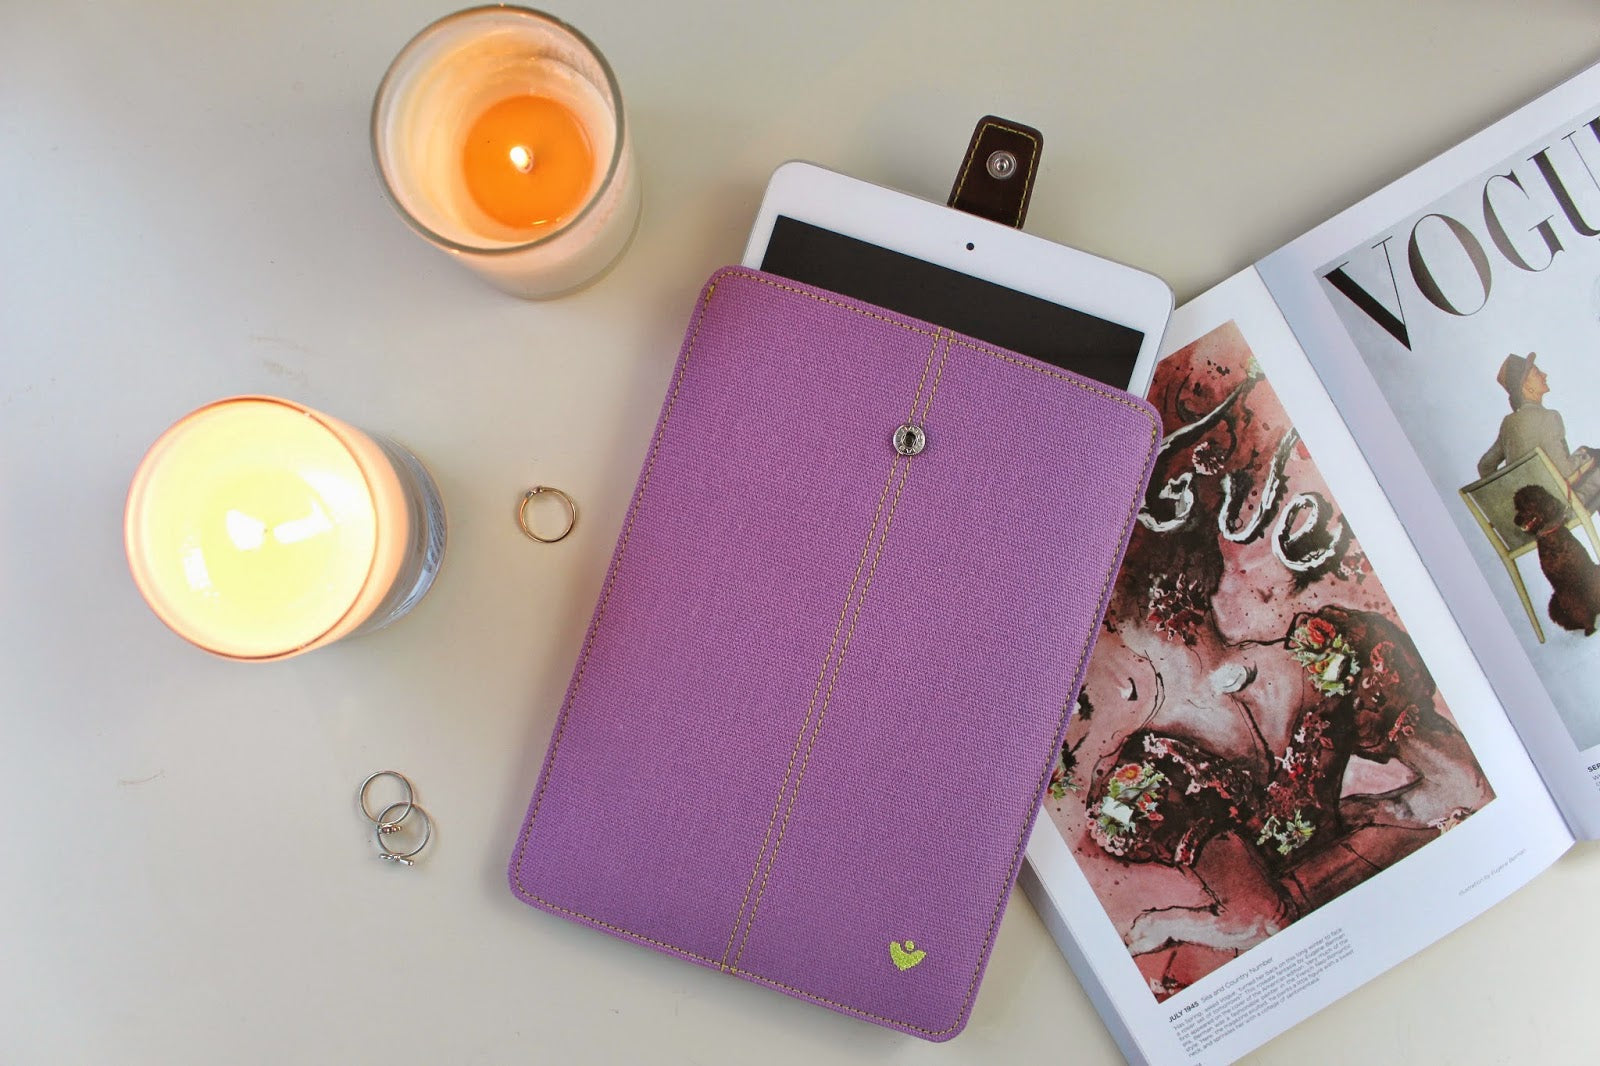 NueVue Purple iPad mini case with safety locking ejection strap